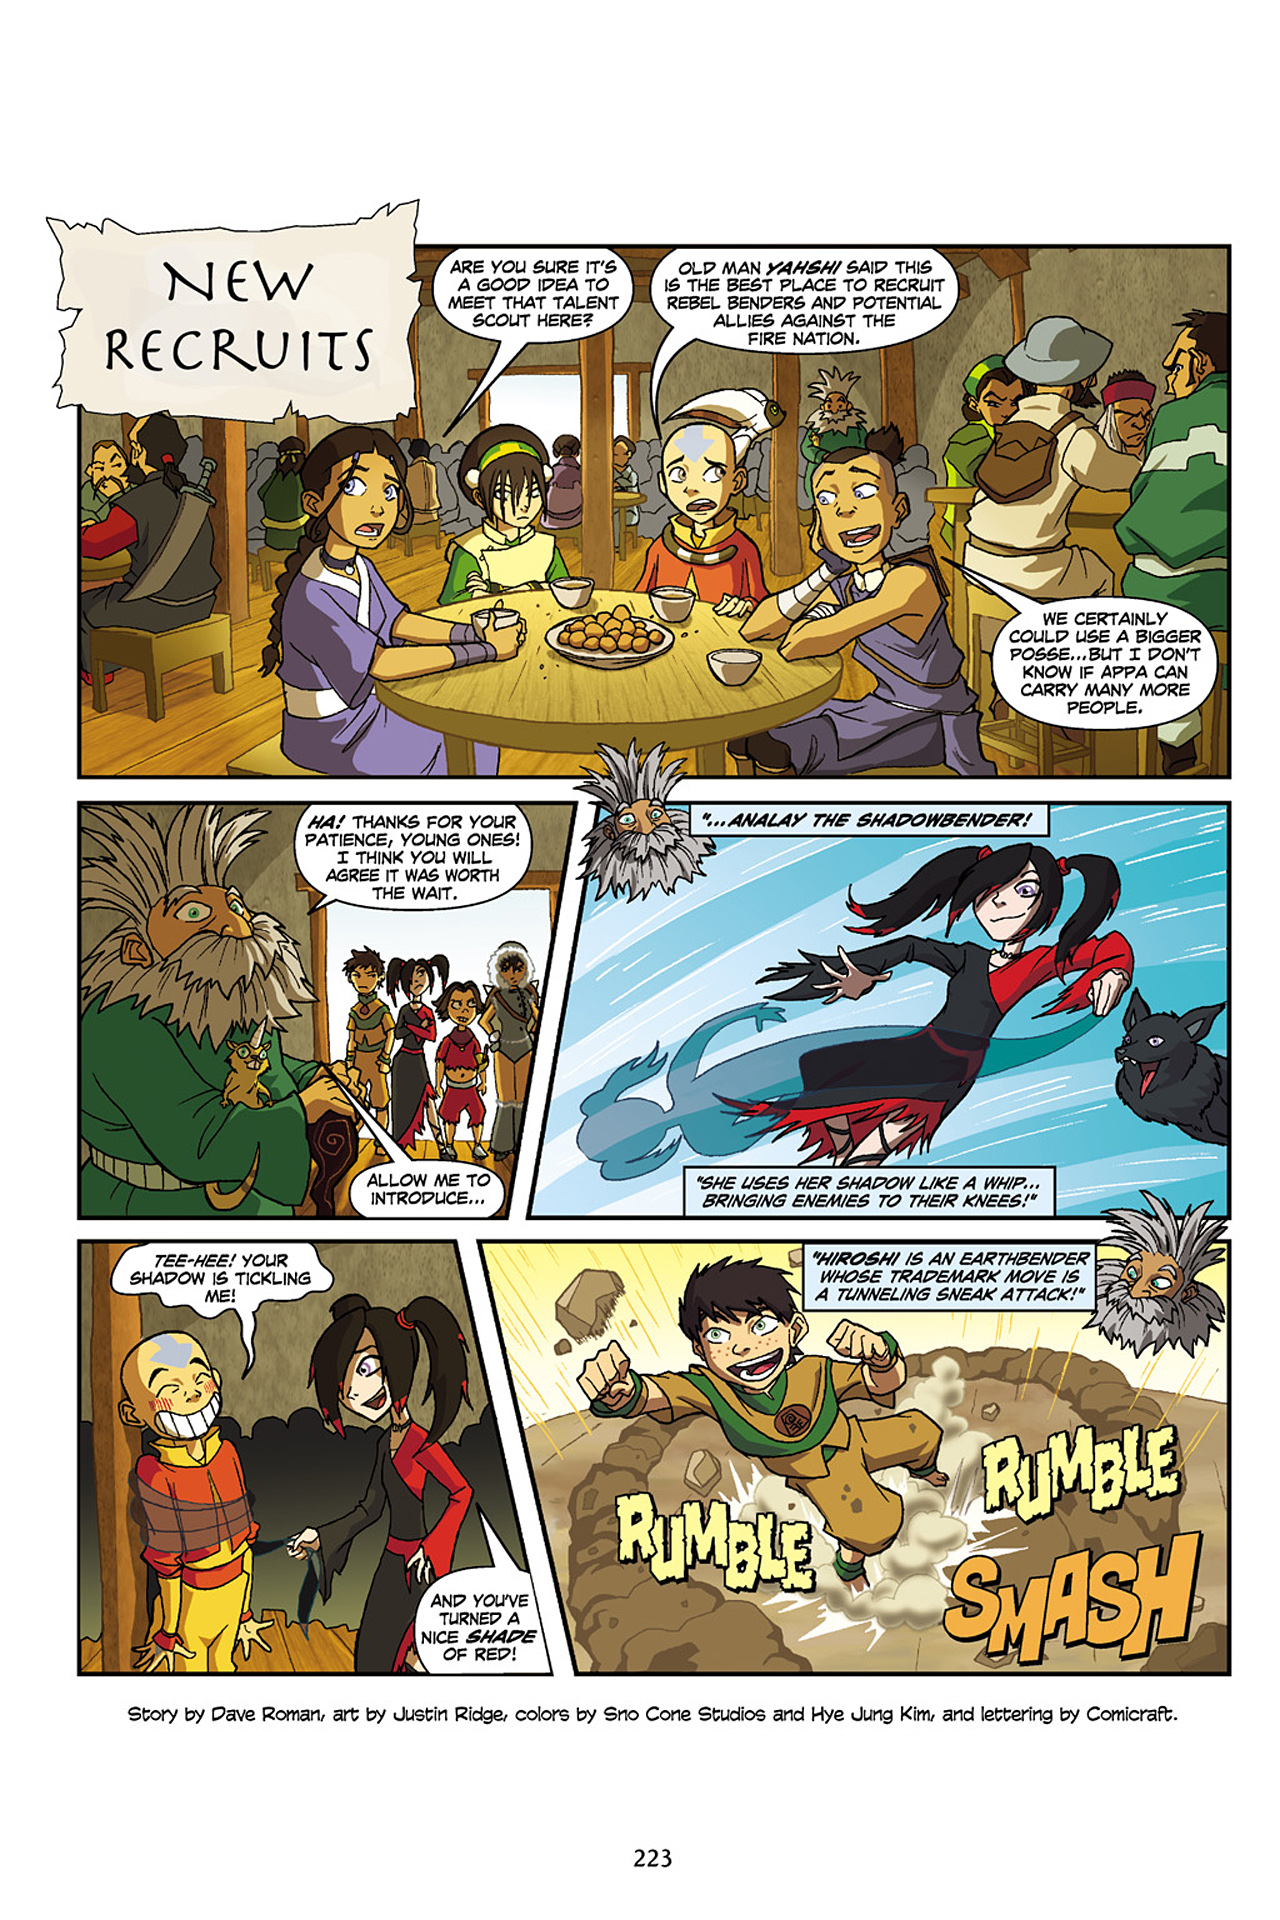 Nickelodeon Avatar: The Last Airbender - The Lost Adventures chap full pic 224